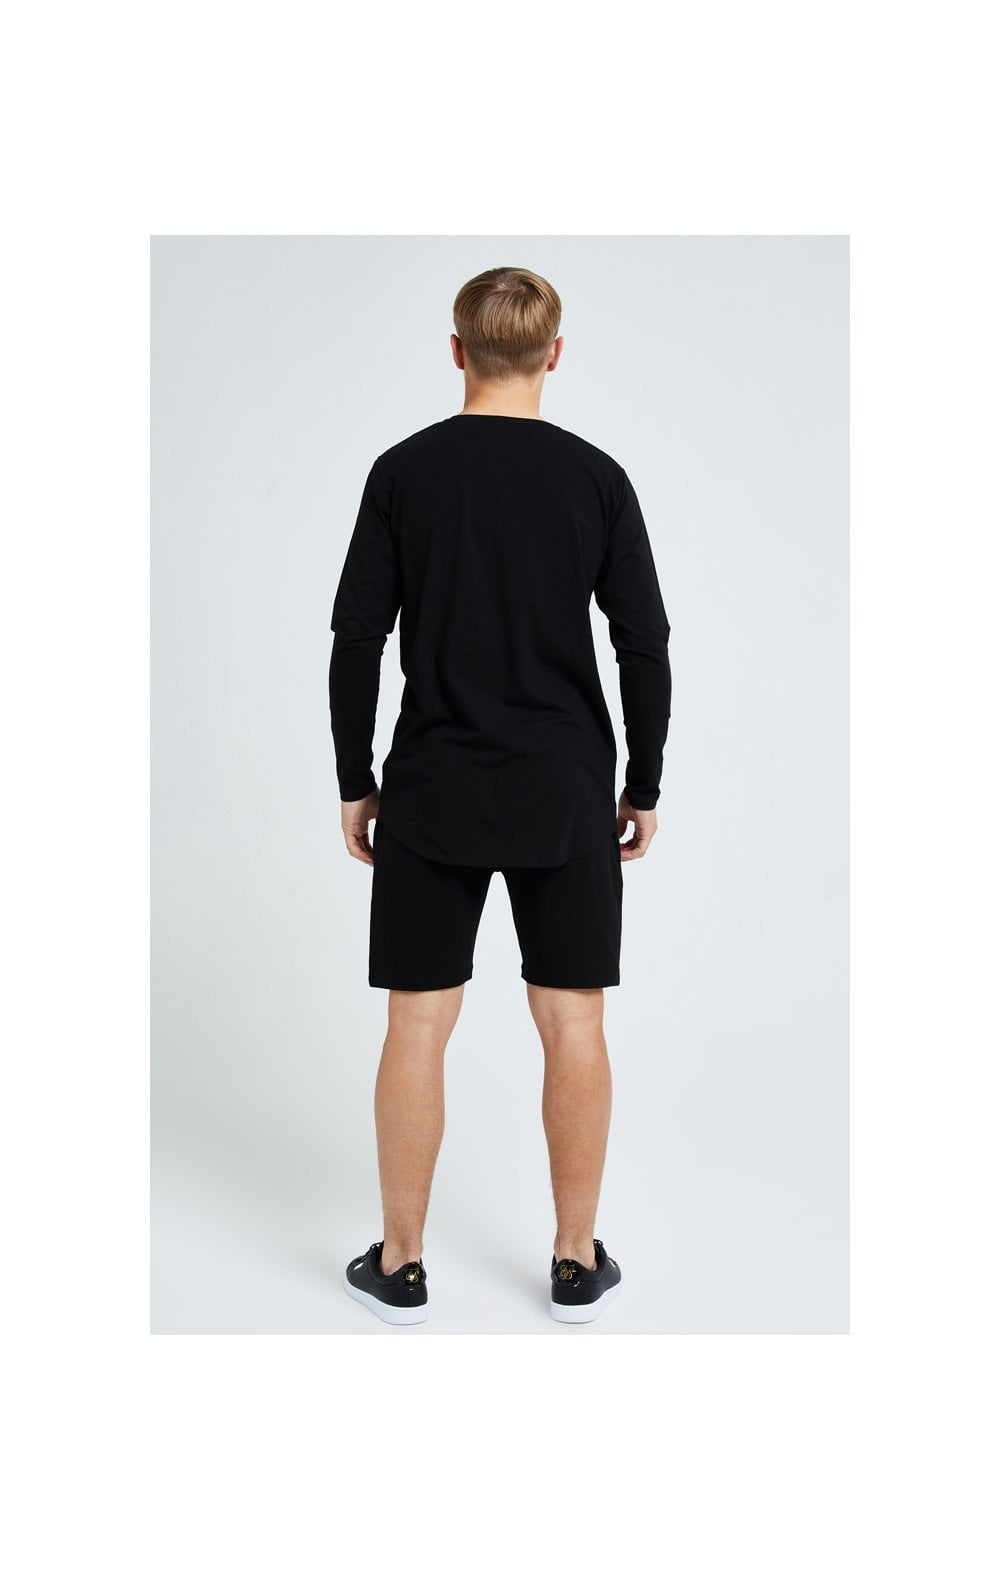 Illusive London Dual L/S Tee - Black (5)